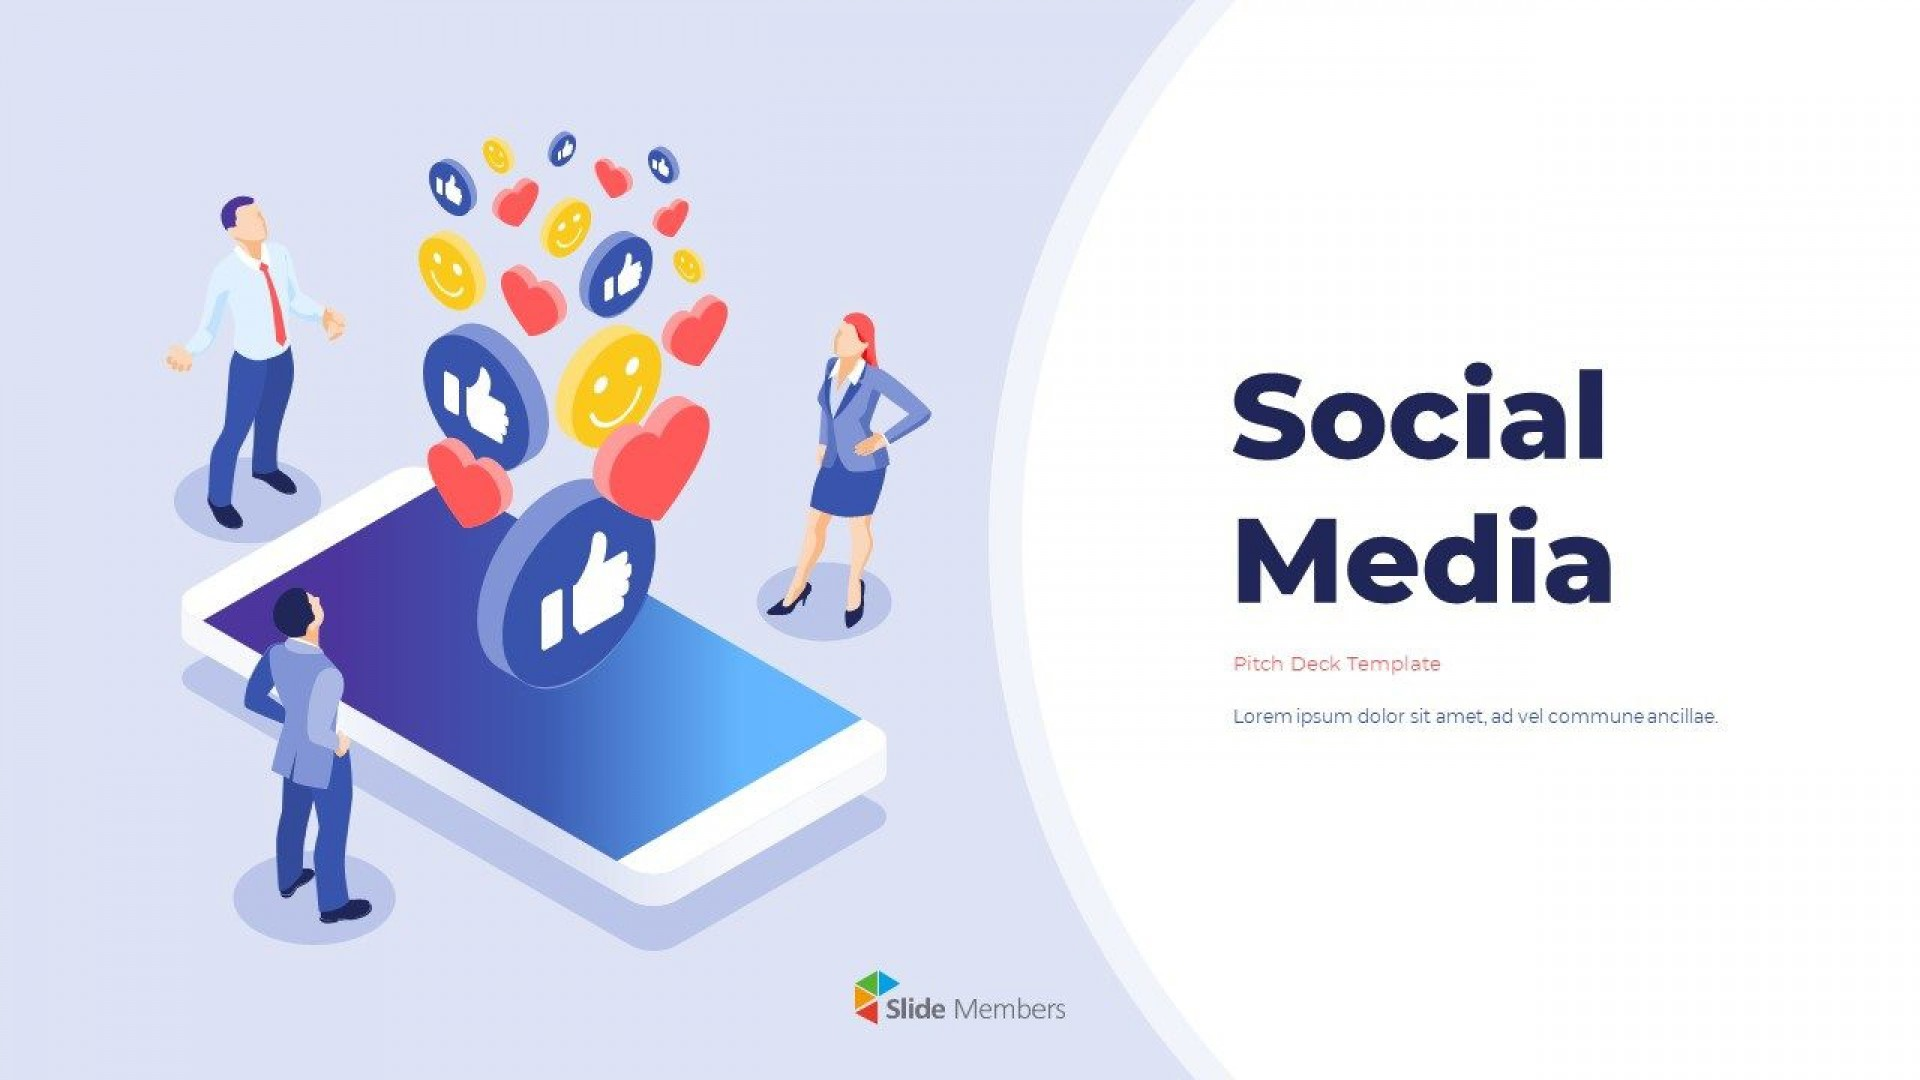 002 Impressive Social Media Powerpoint Template Picture  Templates Report Free Social-media-marketing-powerpoint-template1920